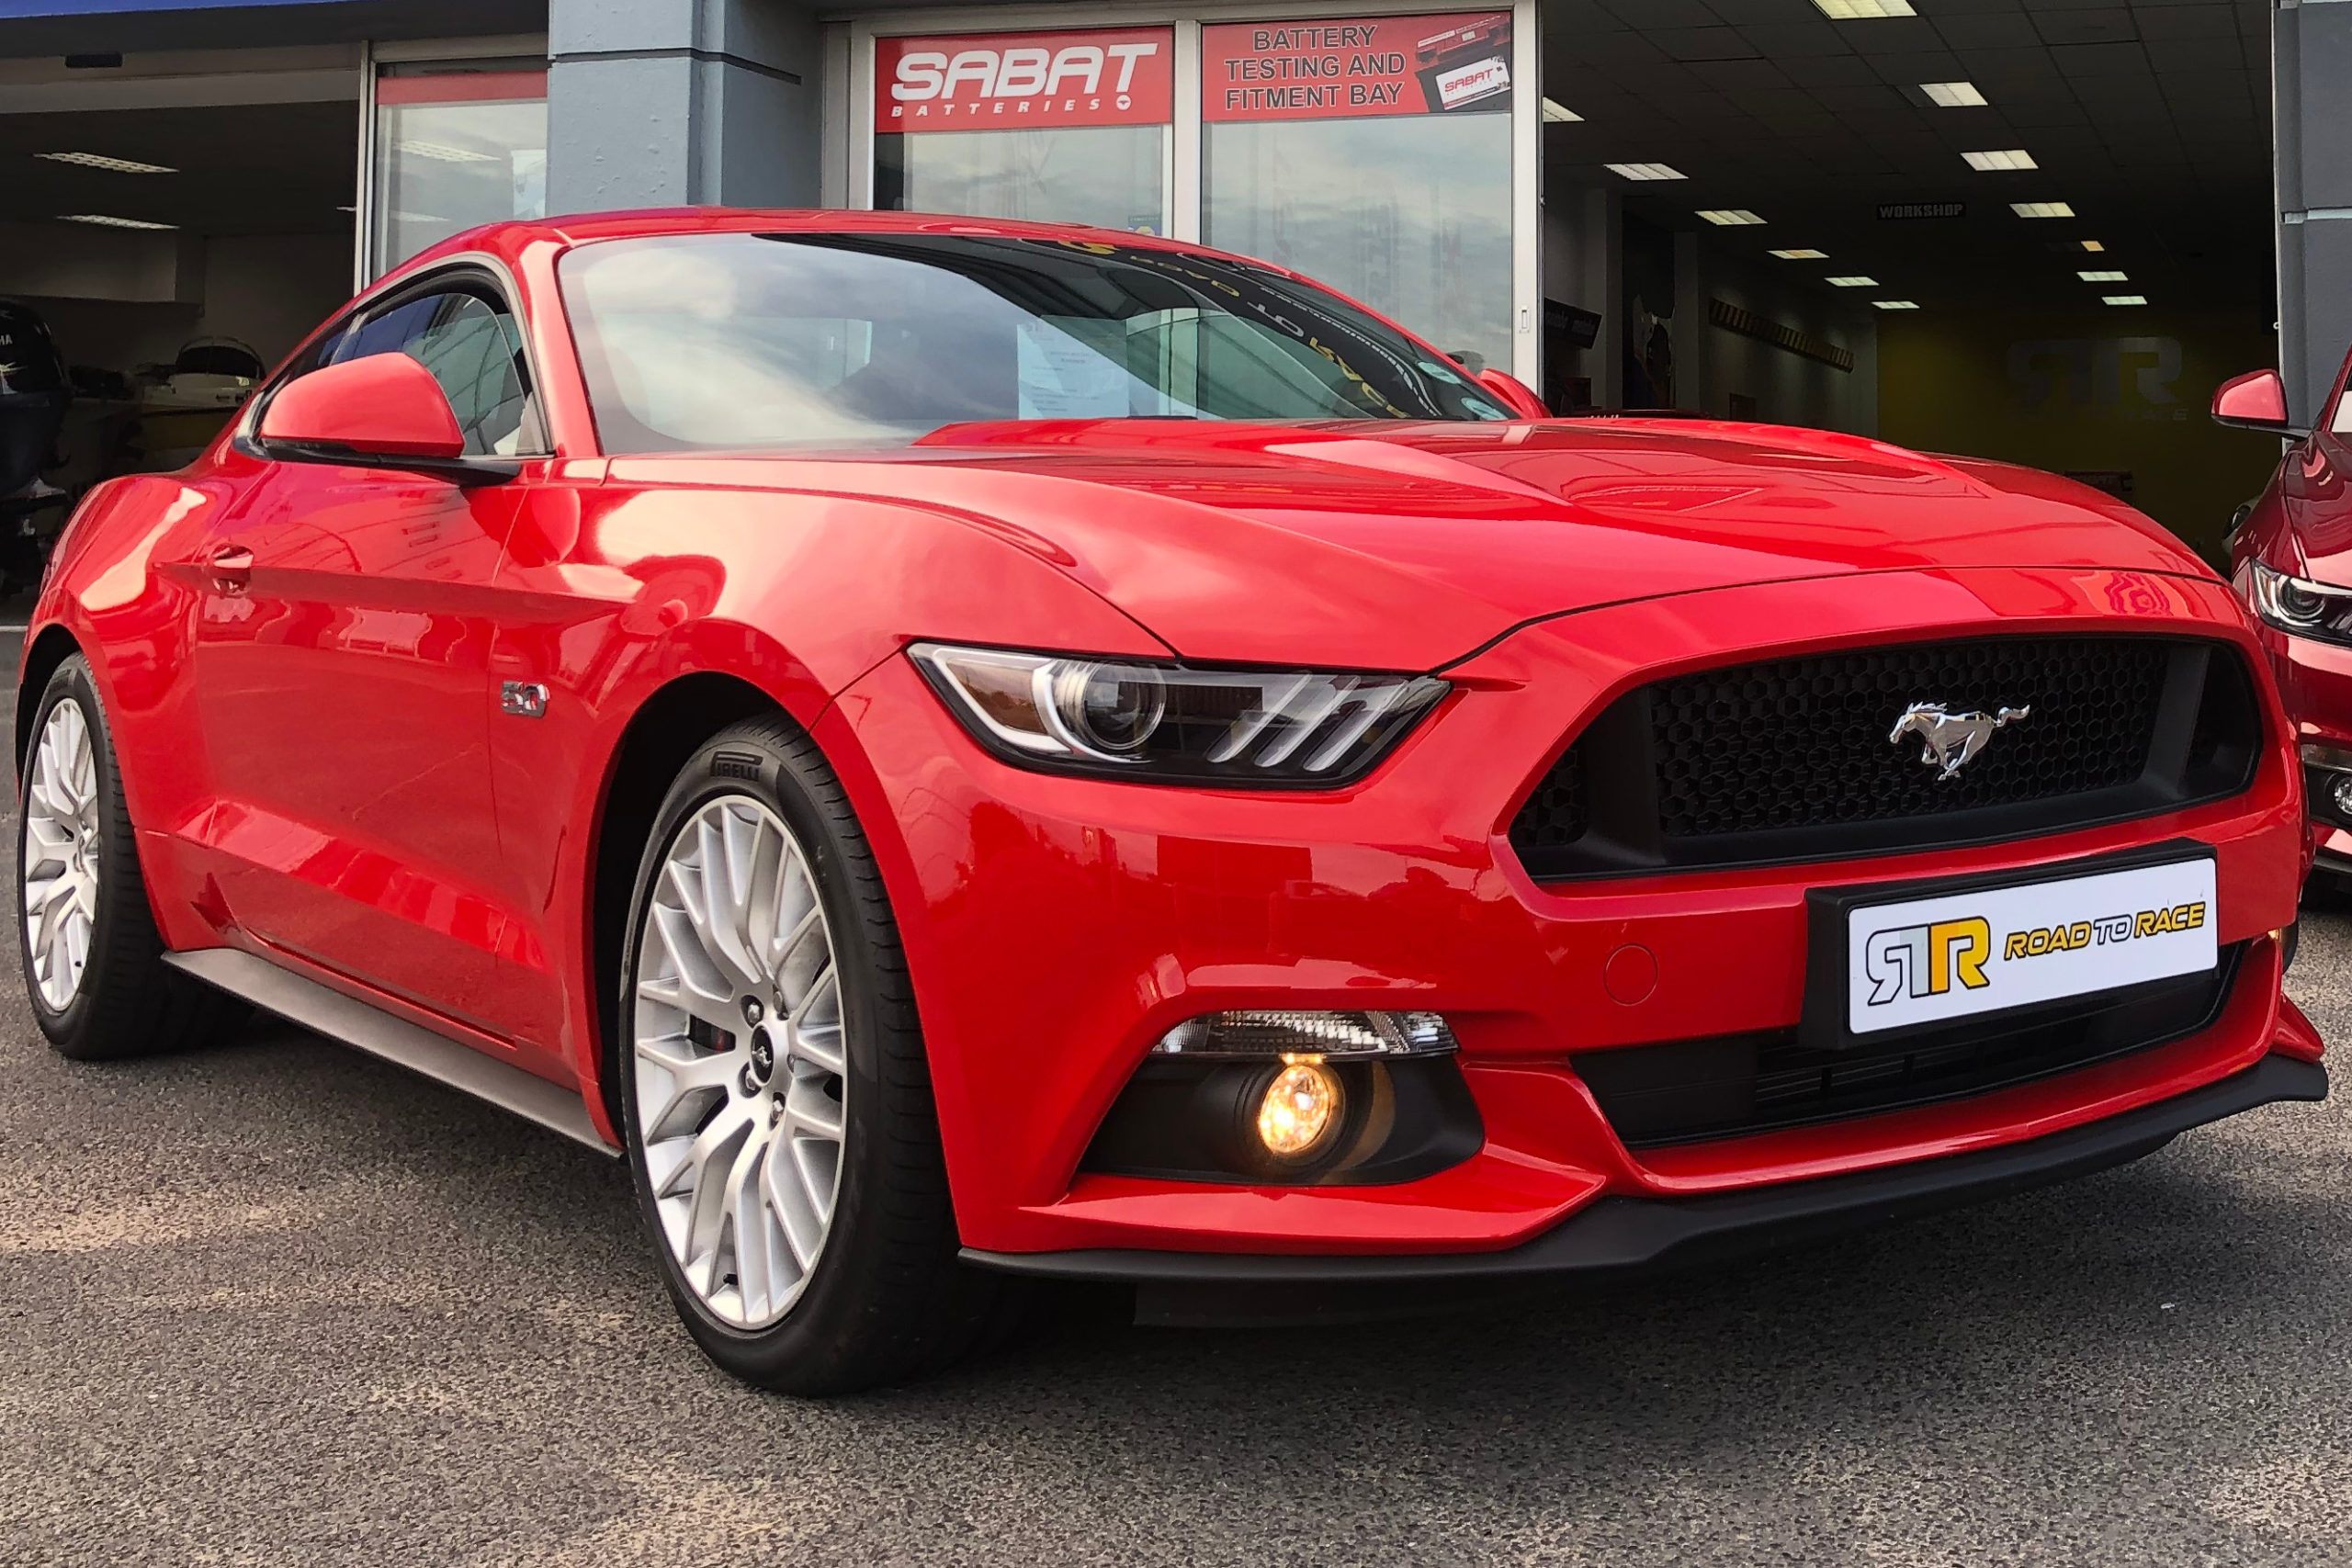 2016 Ford Mustang 5.0 GT